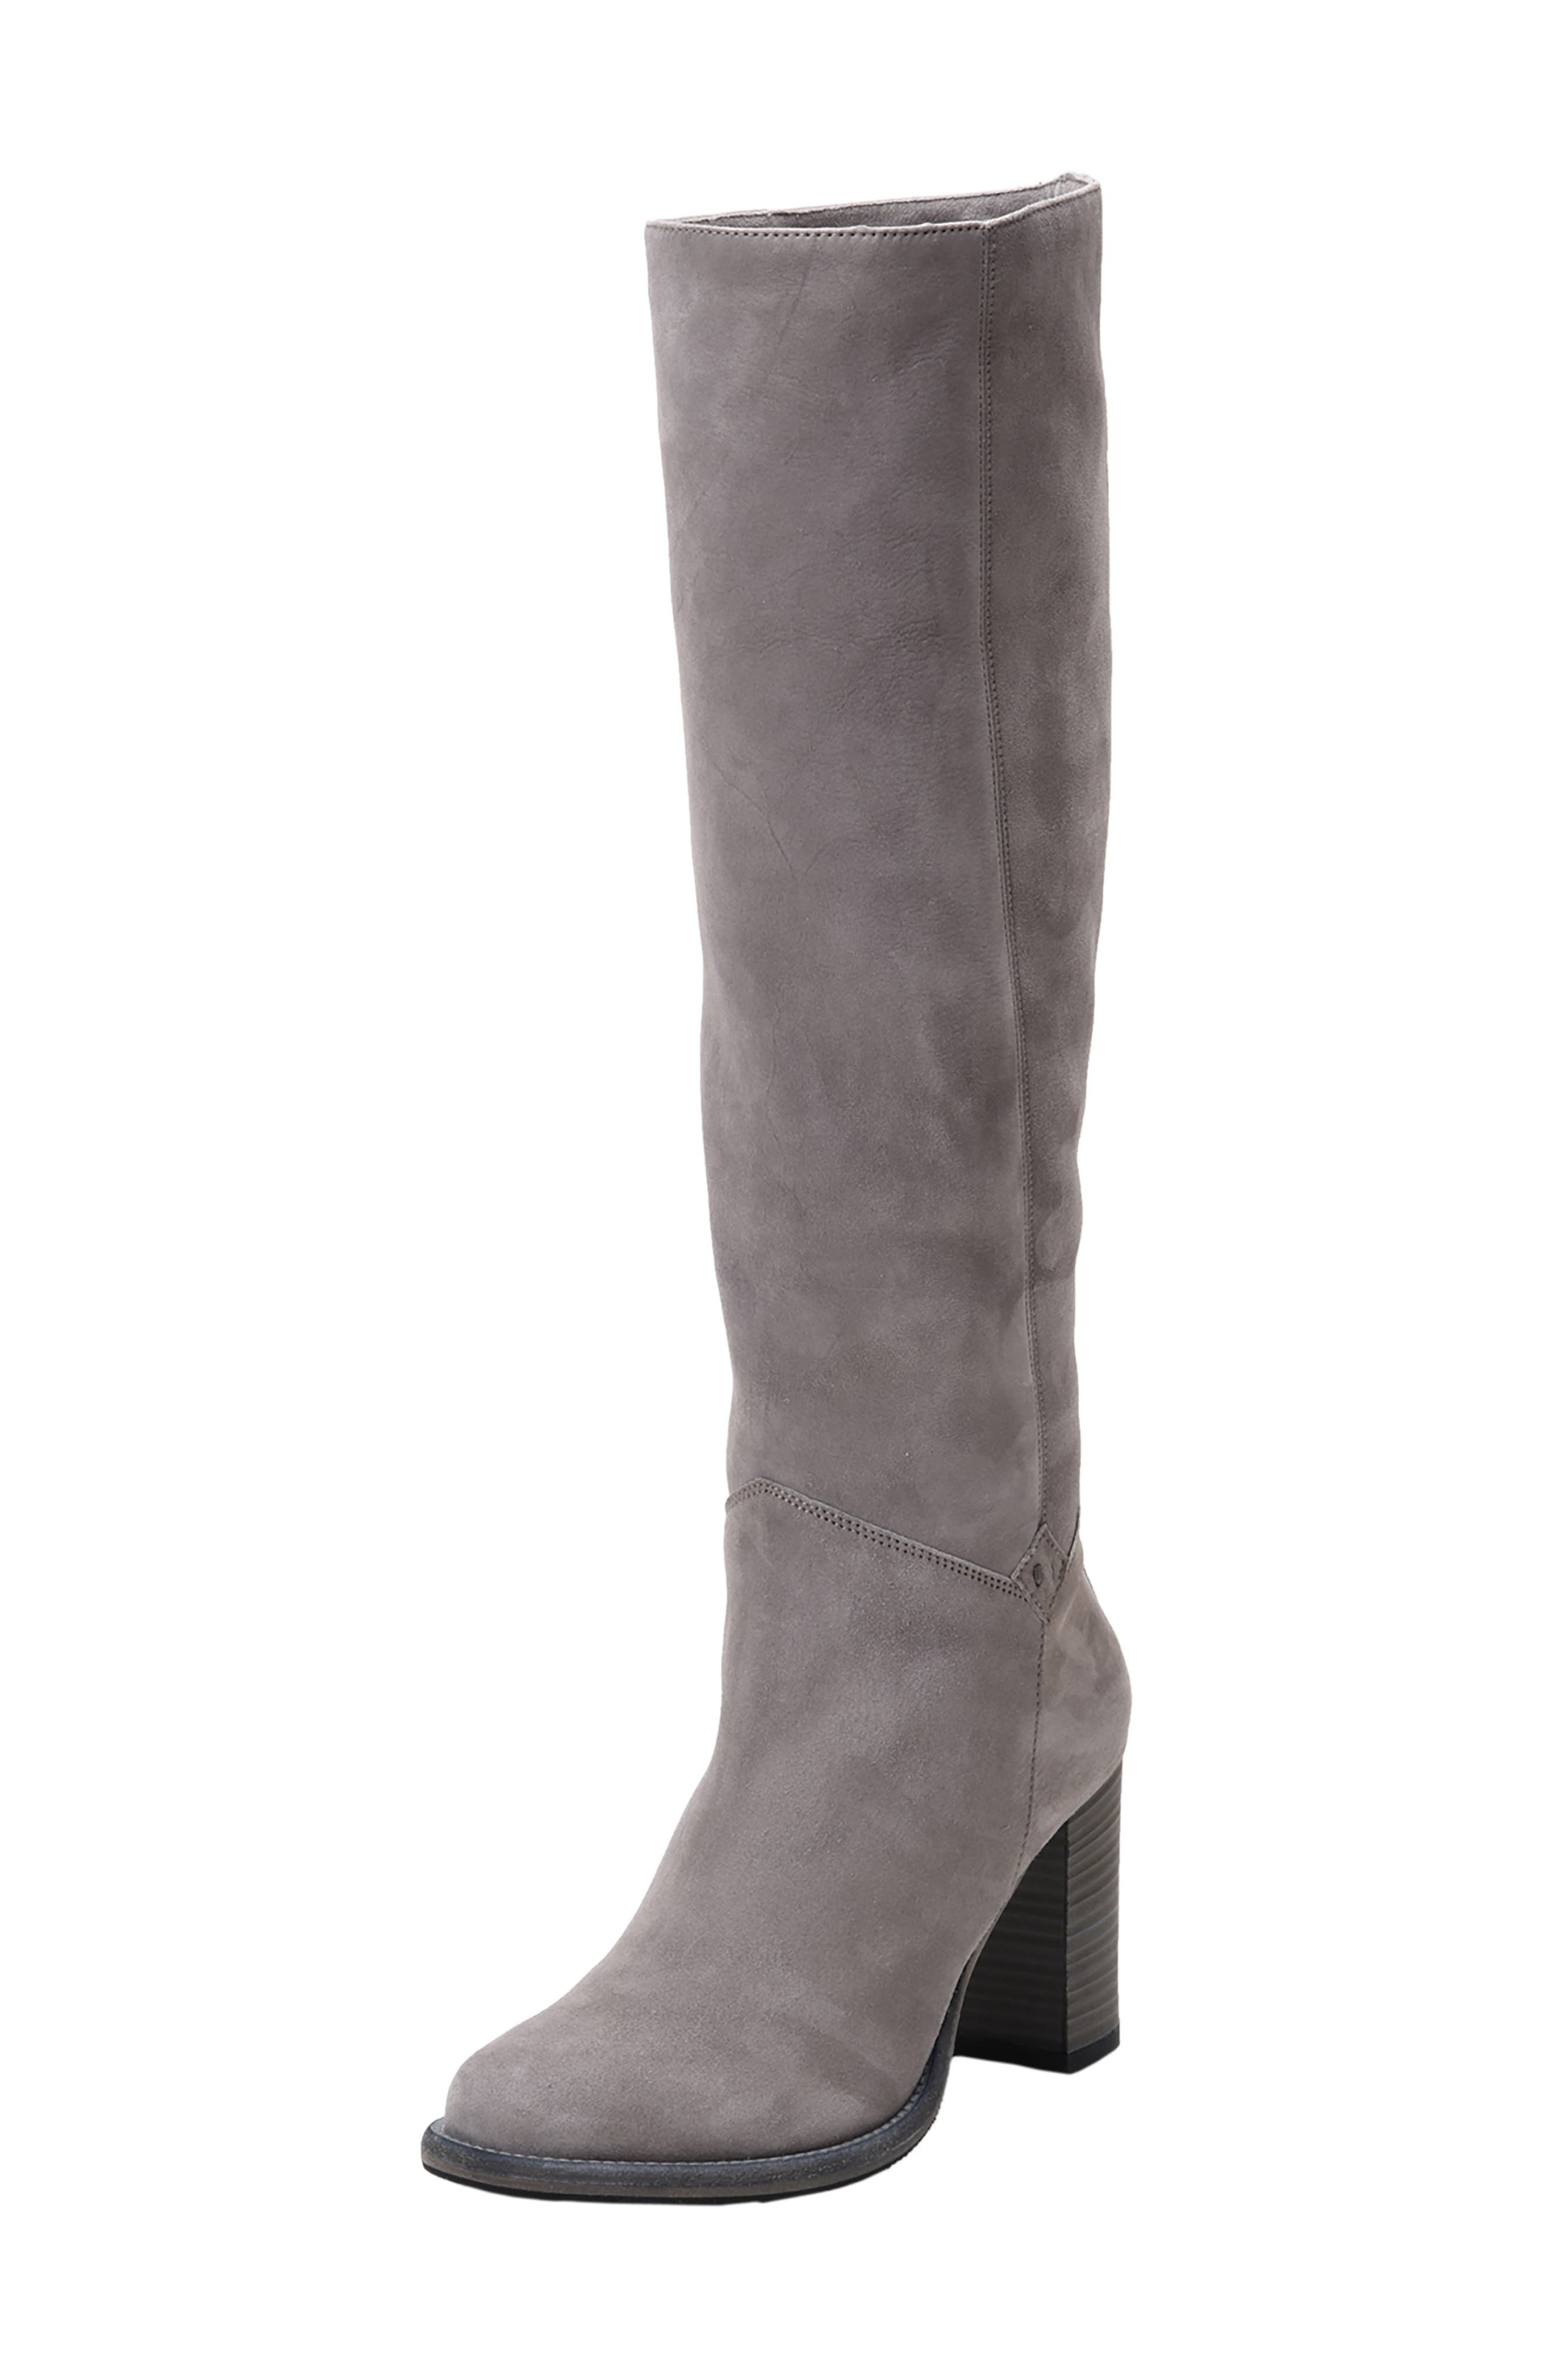 Ross & Snow Michela Sp Waterproof Genuine Shearling Lined Boot, Grey